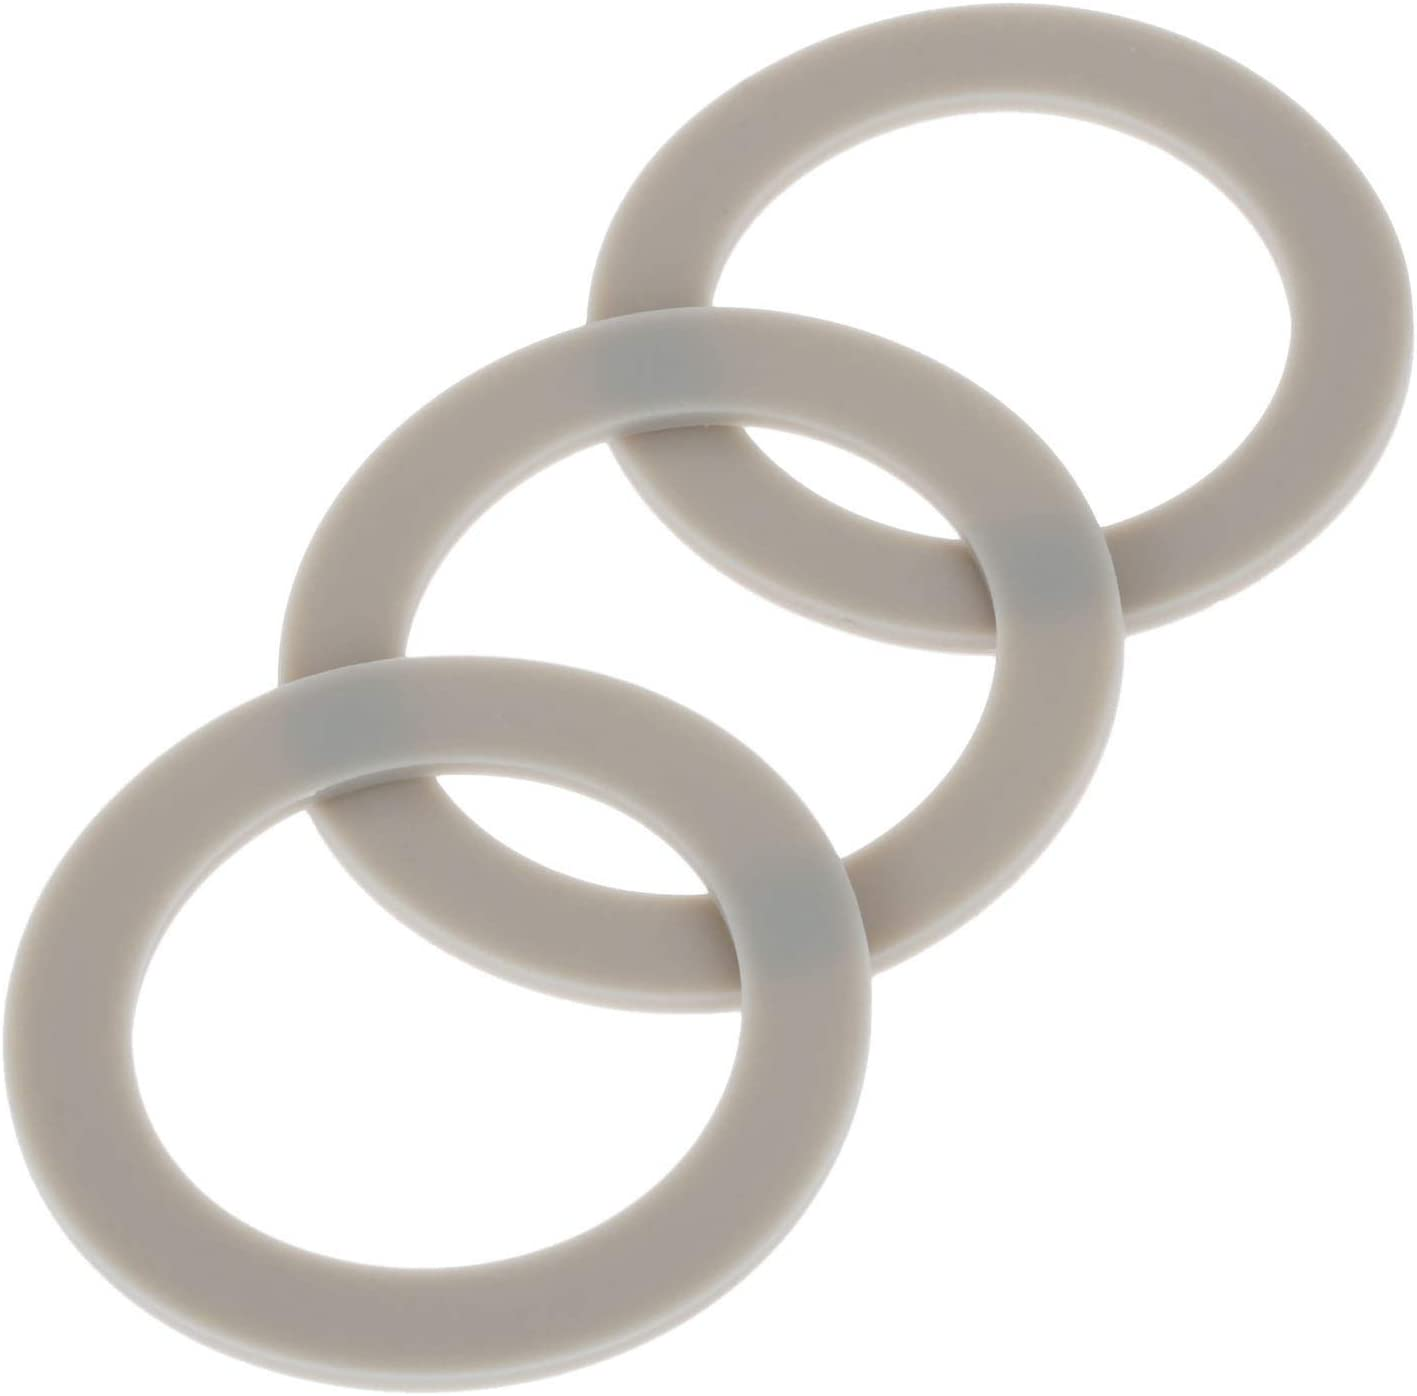 3Pcs Blender Rubber Gasket Sealing O-ring CUCB-456-3, Replacement for Cuisinart Blenders # BFP703 BFP-703 BFP703B BFP-703CH SPB-7 SPB7 SPB-7BK CB8 CB9 BFP-703